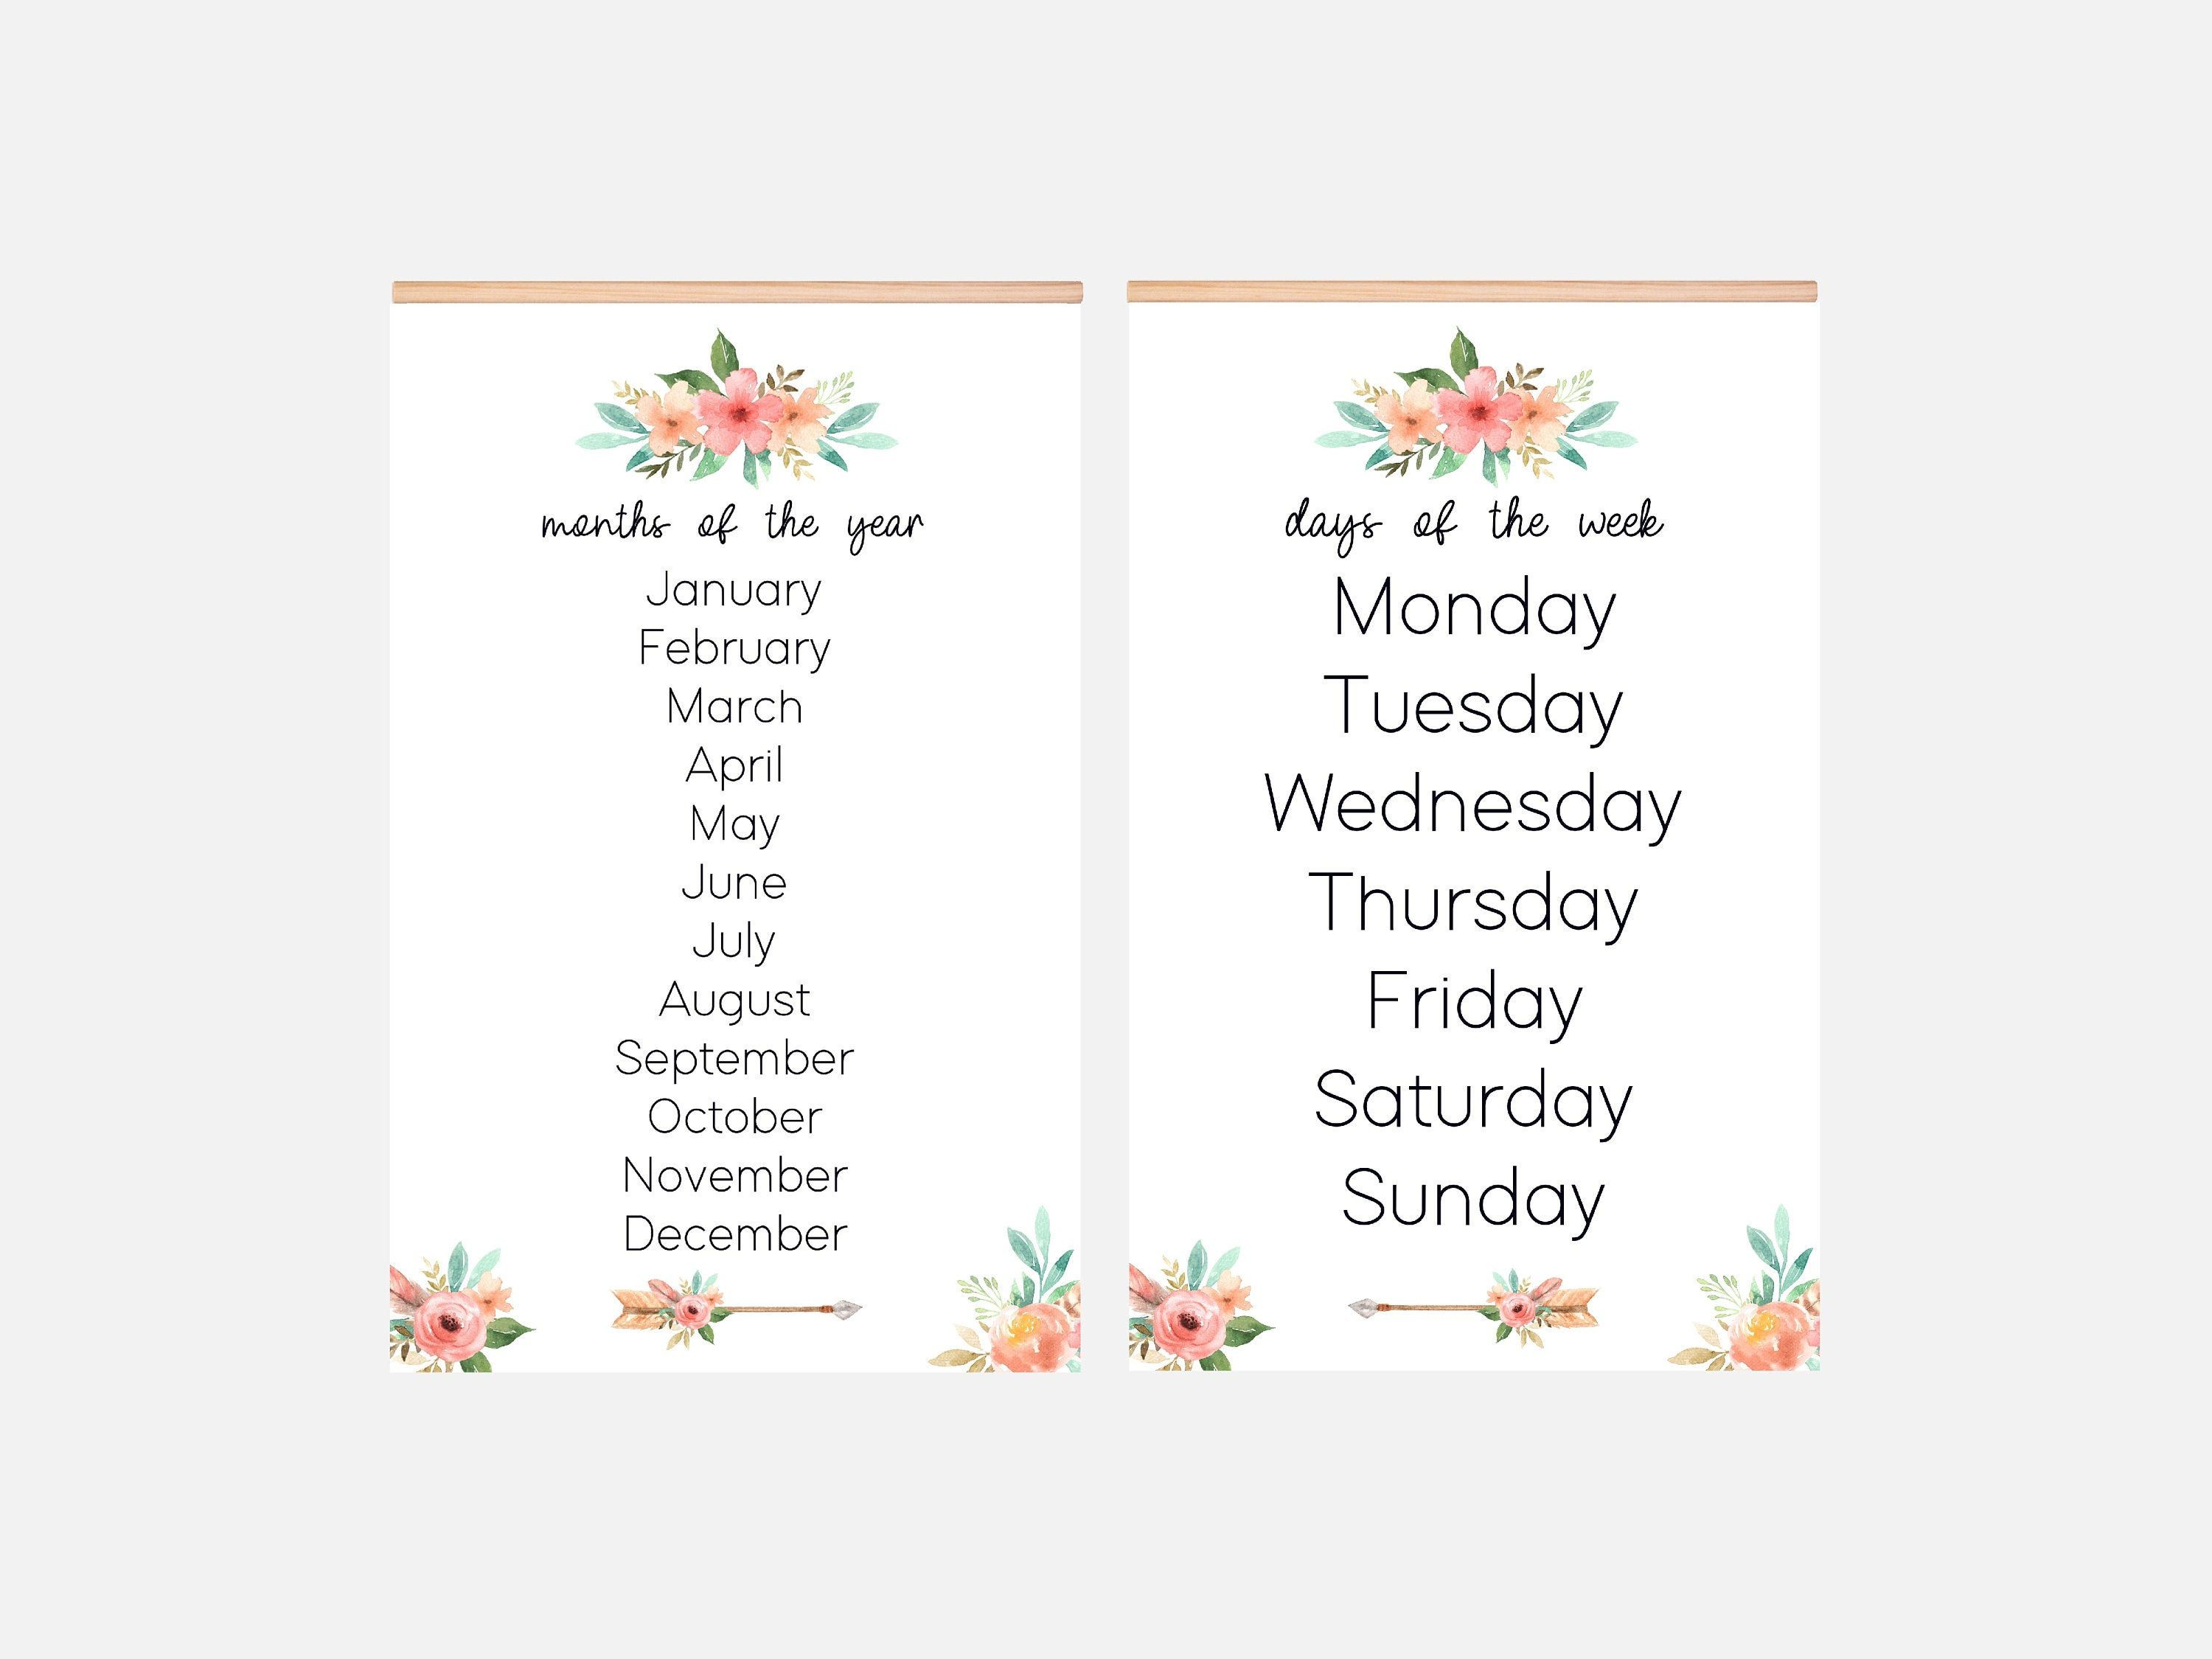 11x17 Set Of 2 Laminated Posters Educational Homeschool Etsy In 2020 11x17 Months In A Year Education Poster